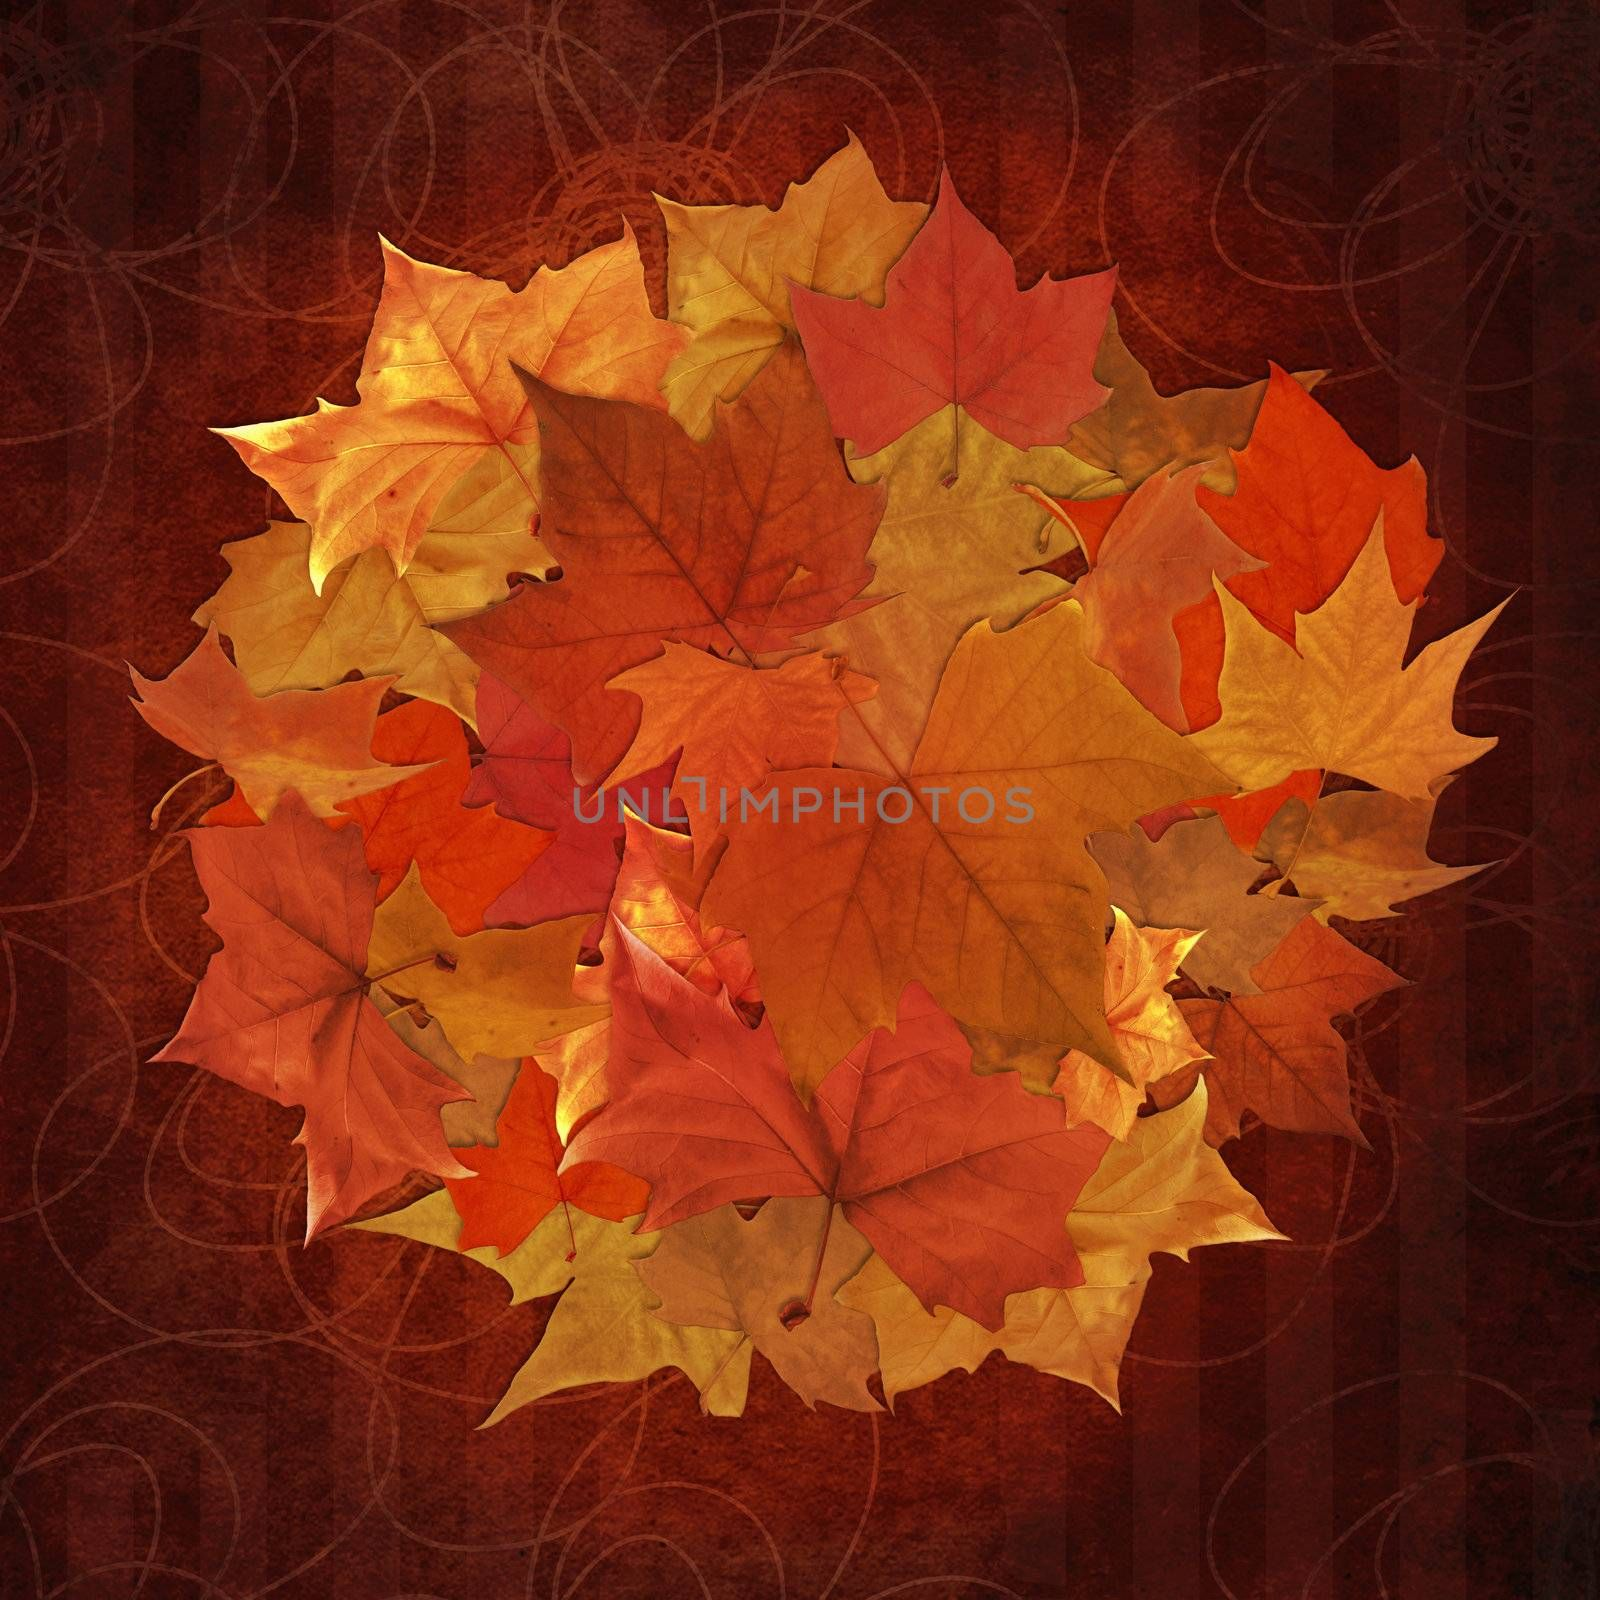 Autumn leaf in circle shape collage over vintage pattern background